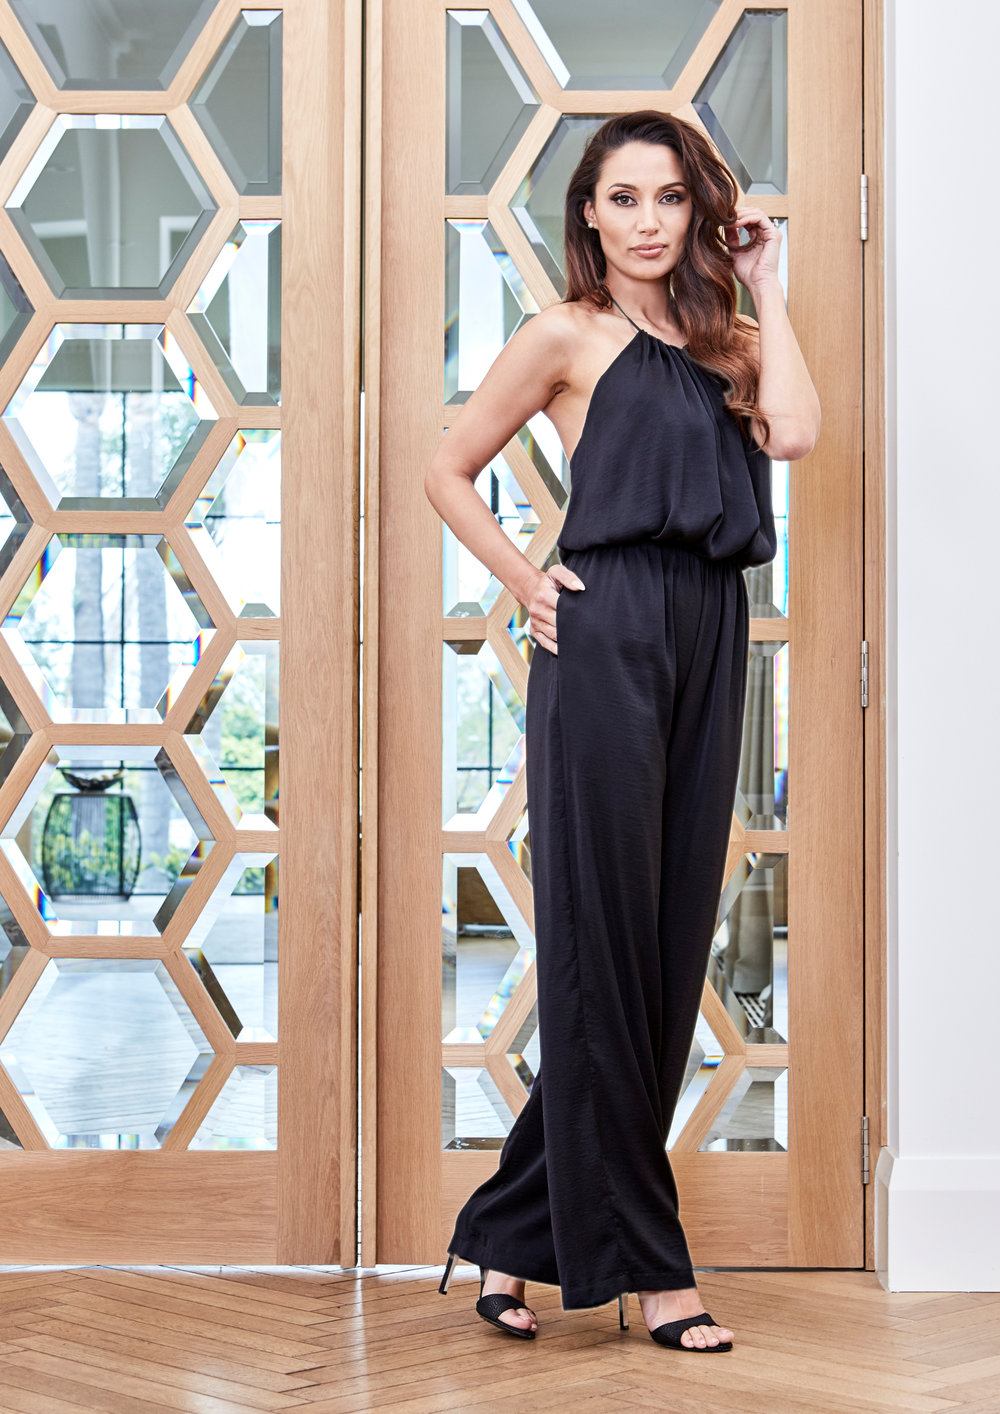 My favourite piece from this collection is this flowing jumpsuit. The silky fabric, flowing silhouette and cinched waist were inspired by Italian poolside-chic. The pockets make it functional too which I adore. Ana jumpsuit in black $149.95